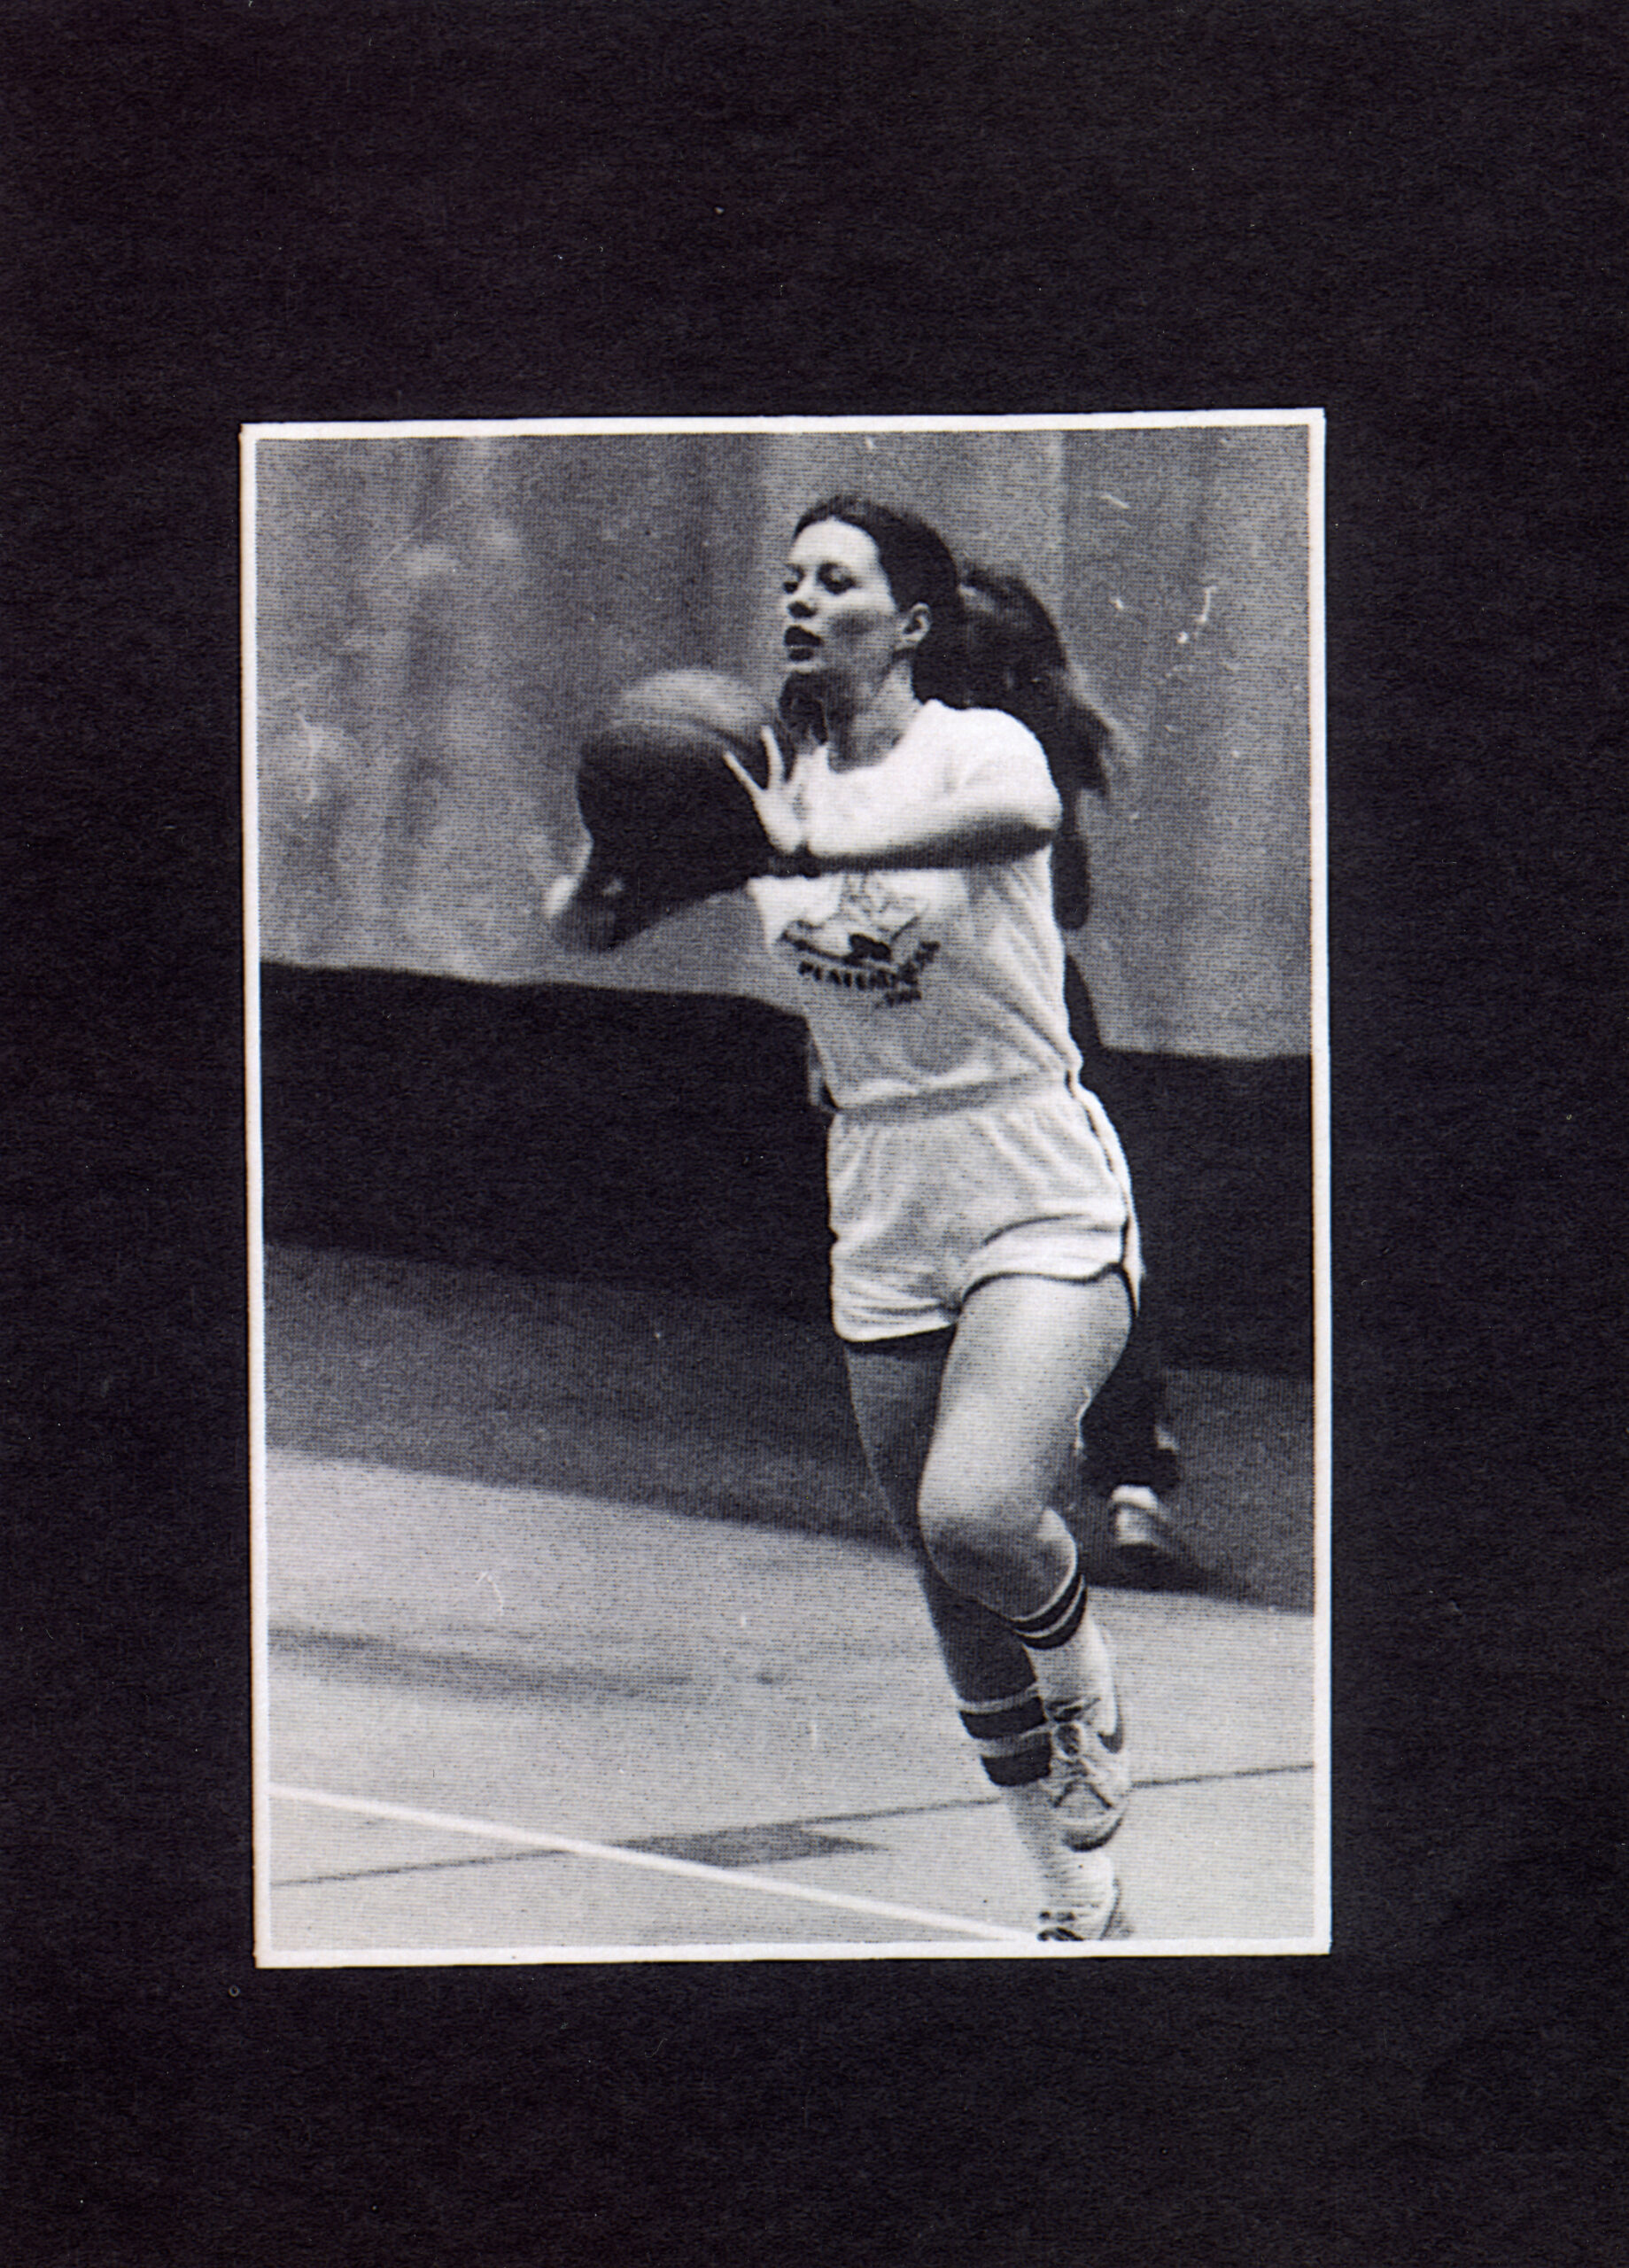 Image depicts a black and white photo of a female playing basketball